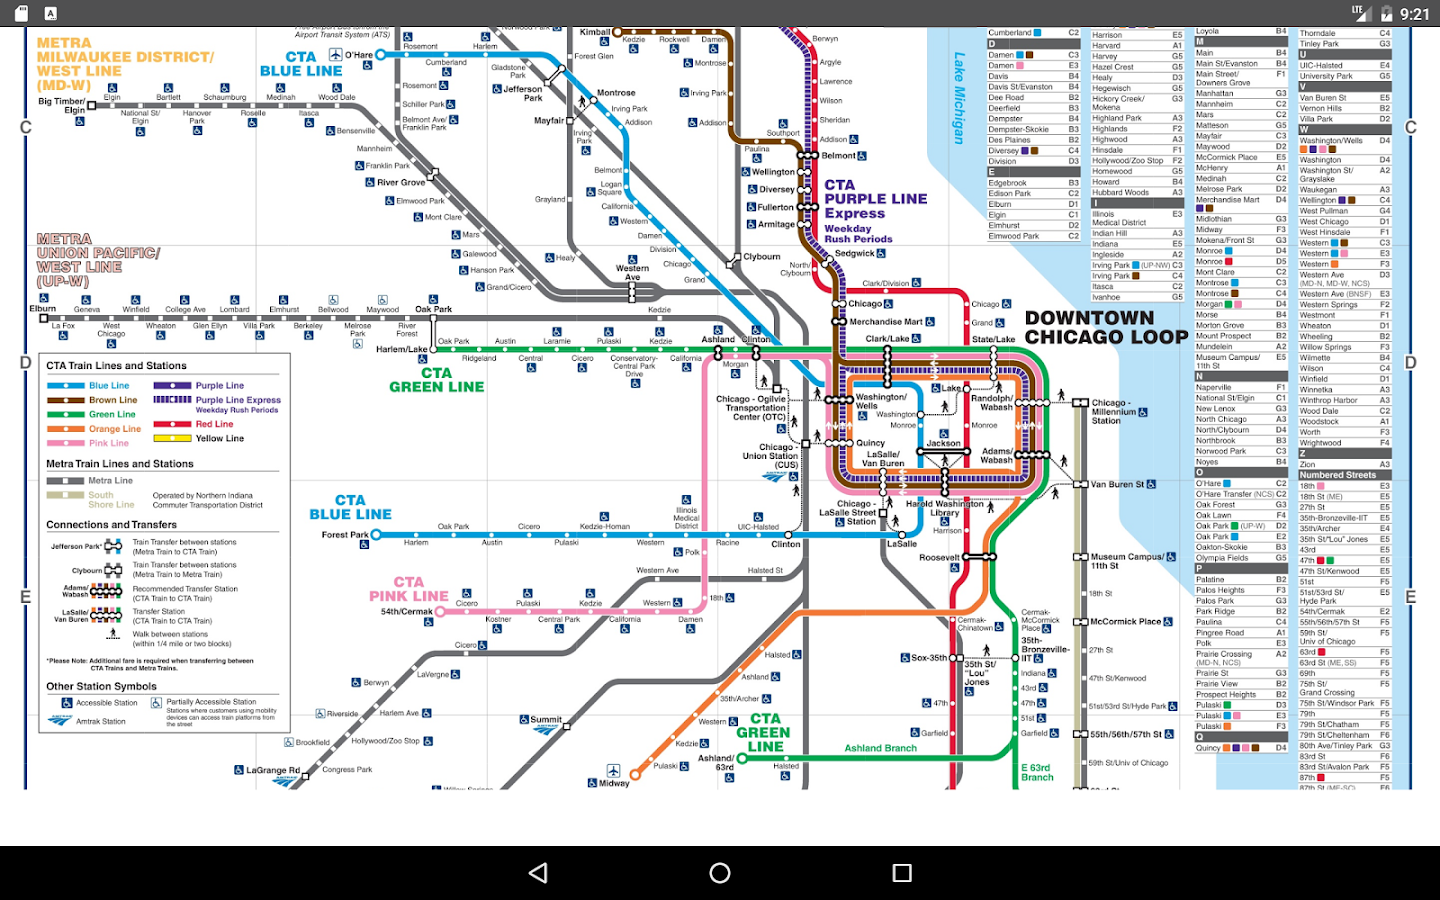 chicago subway map  screenshot. chicago subway map   android apps on google play